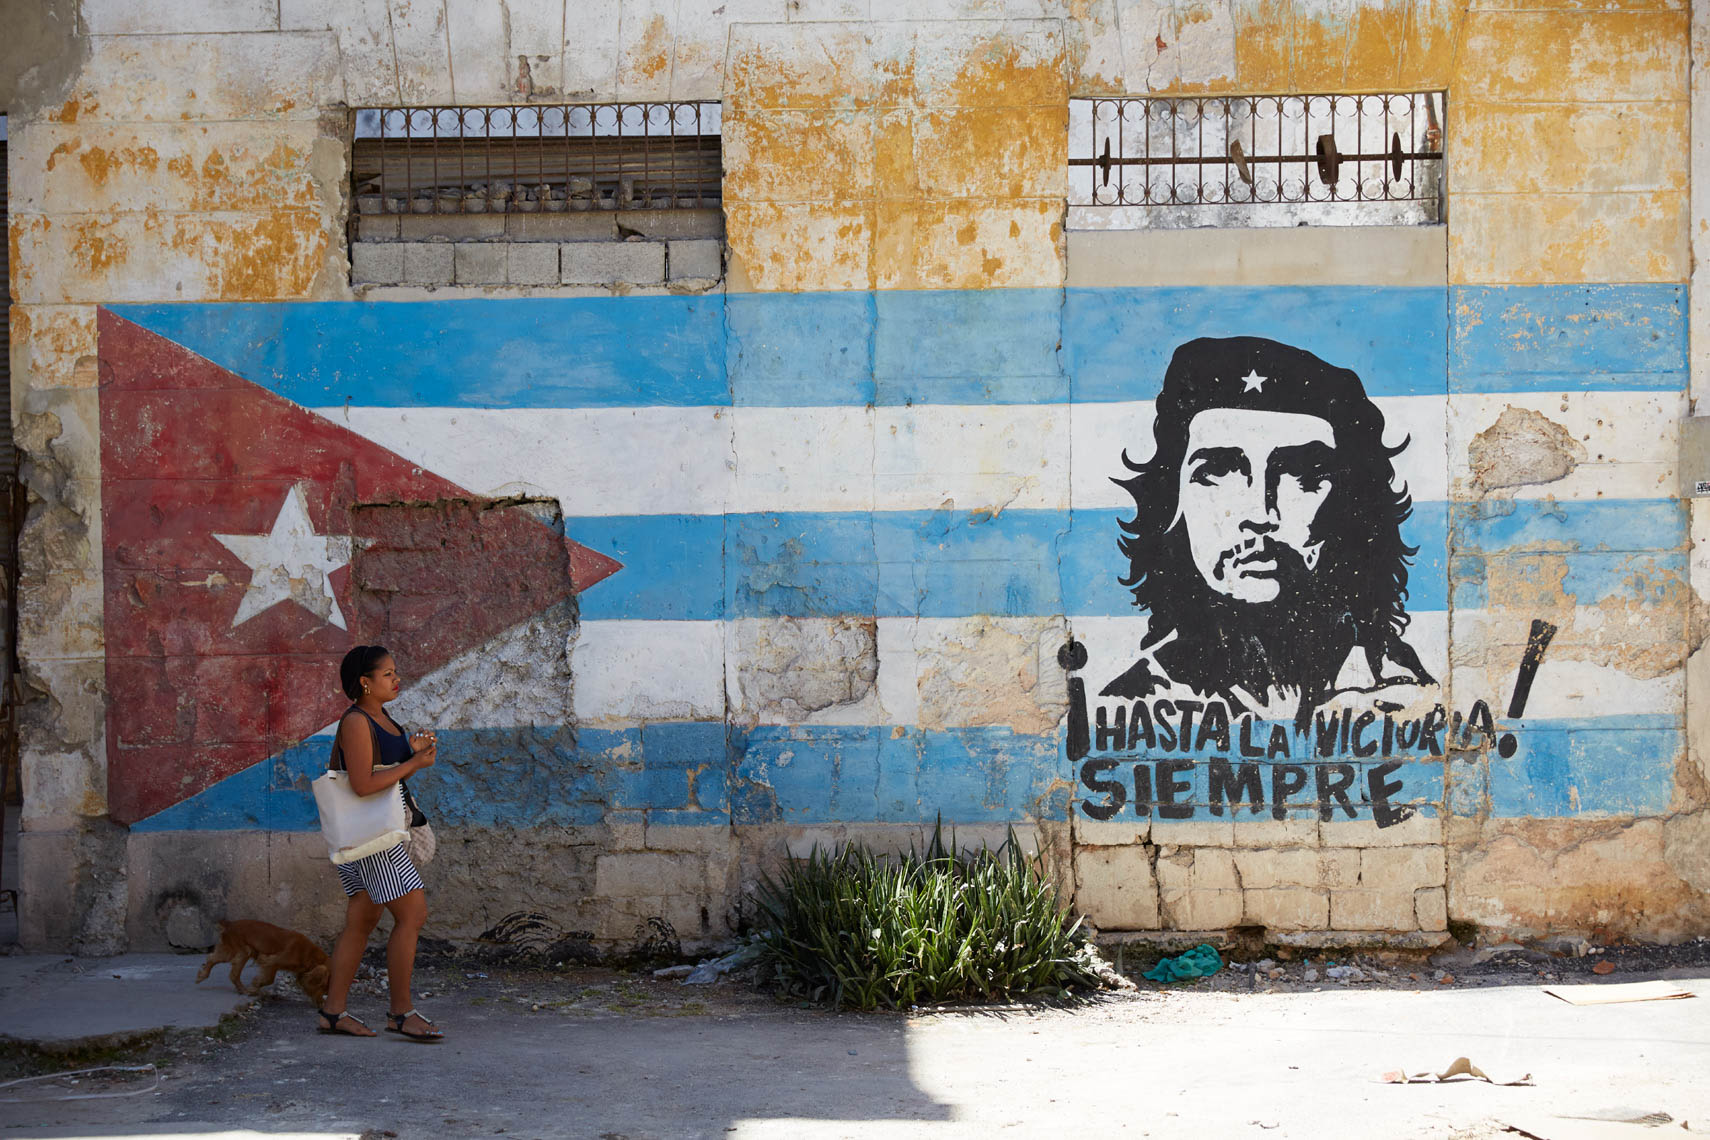 woman with dog walking past painting of Cuban flag on old wall with street art of Fidel Castro